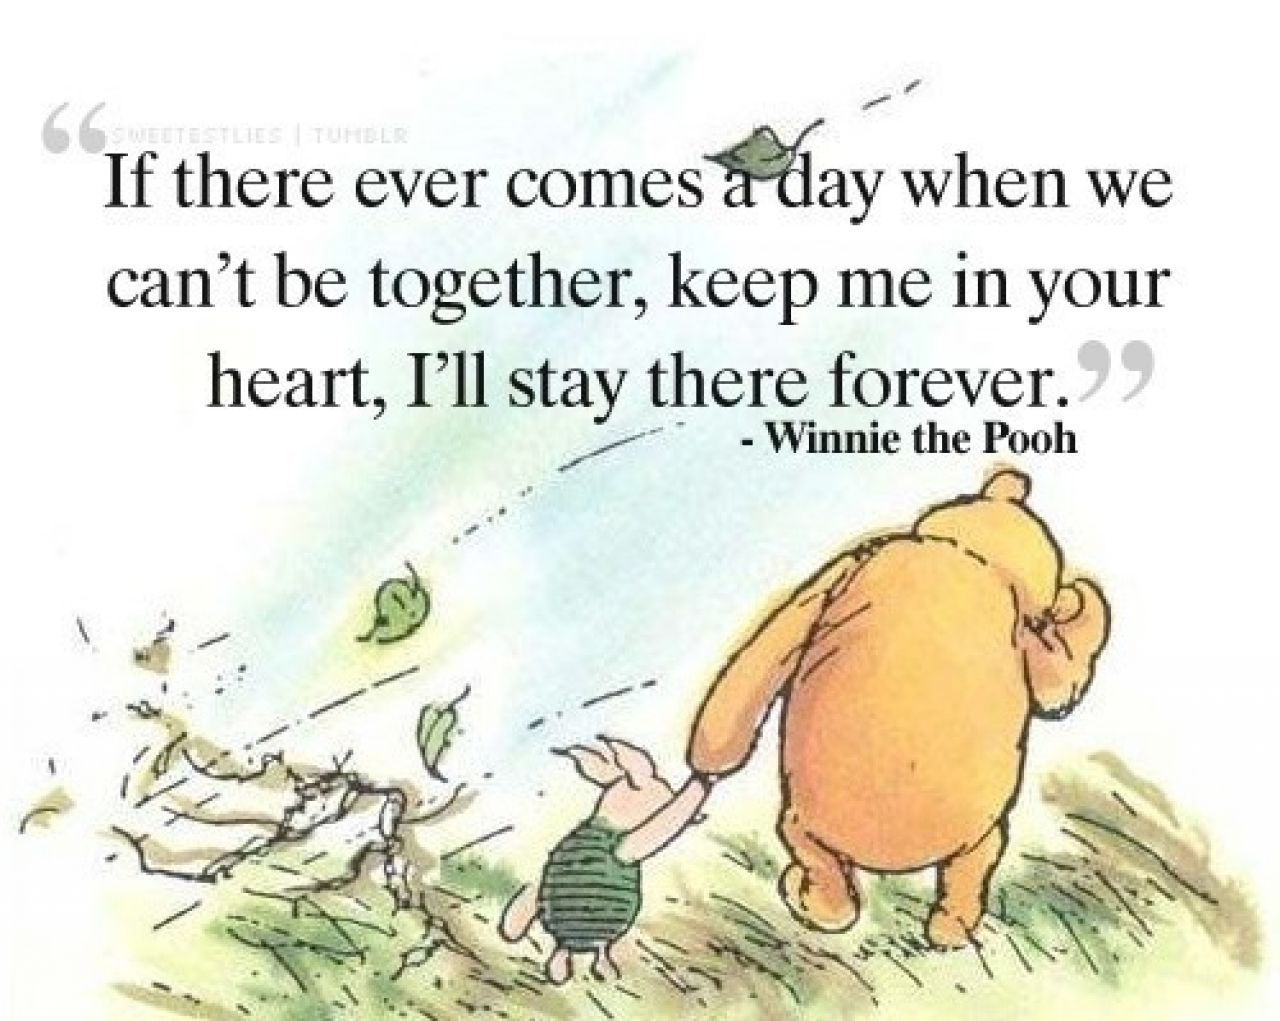 Inspirational Quotes For Girls Tumblr Hd Cartoon Cute Love Quote Winnie The Pooh Inspiring Picture On